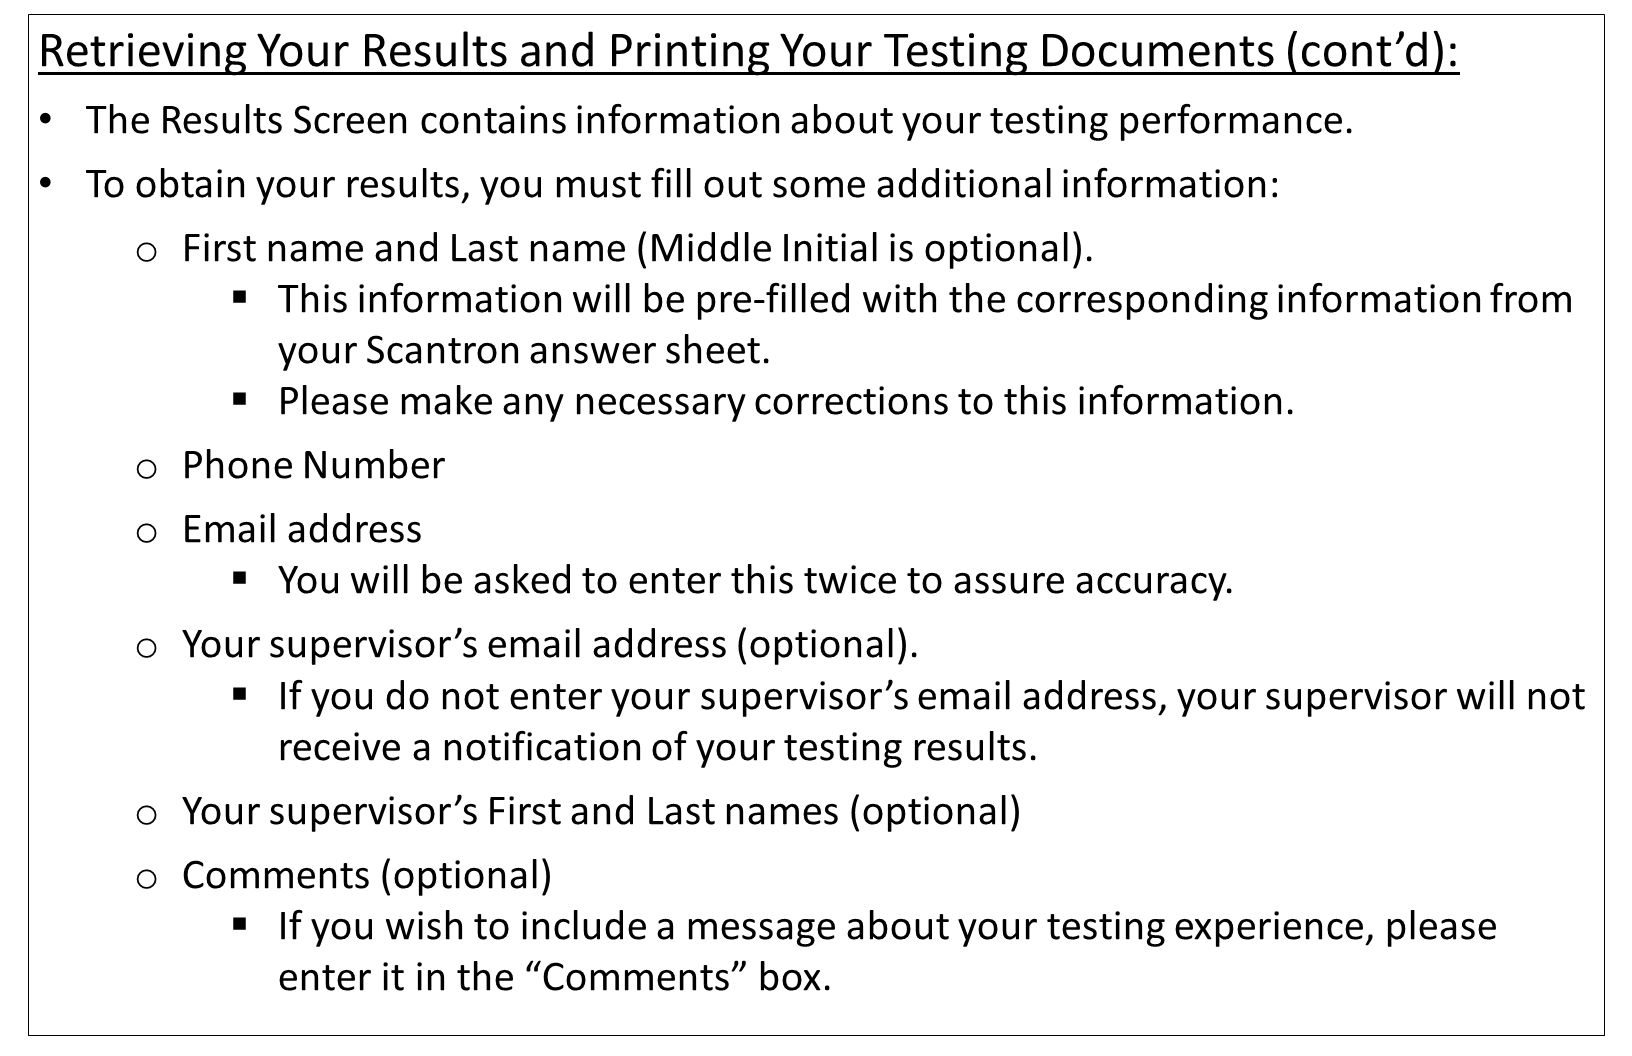 Retrieving Your Results and Printing Your Testing Documents (cont'd):